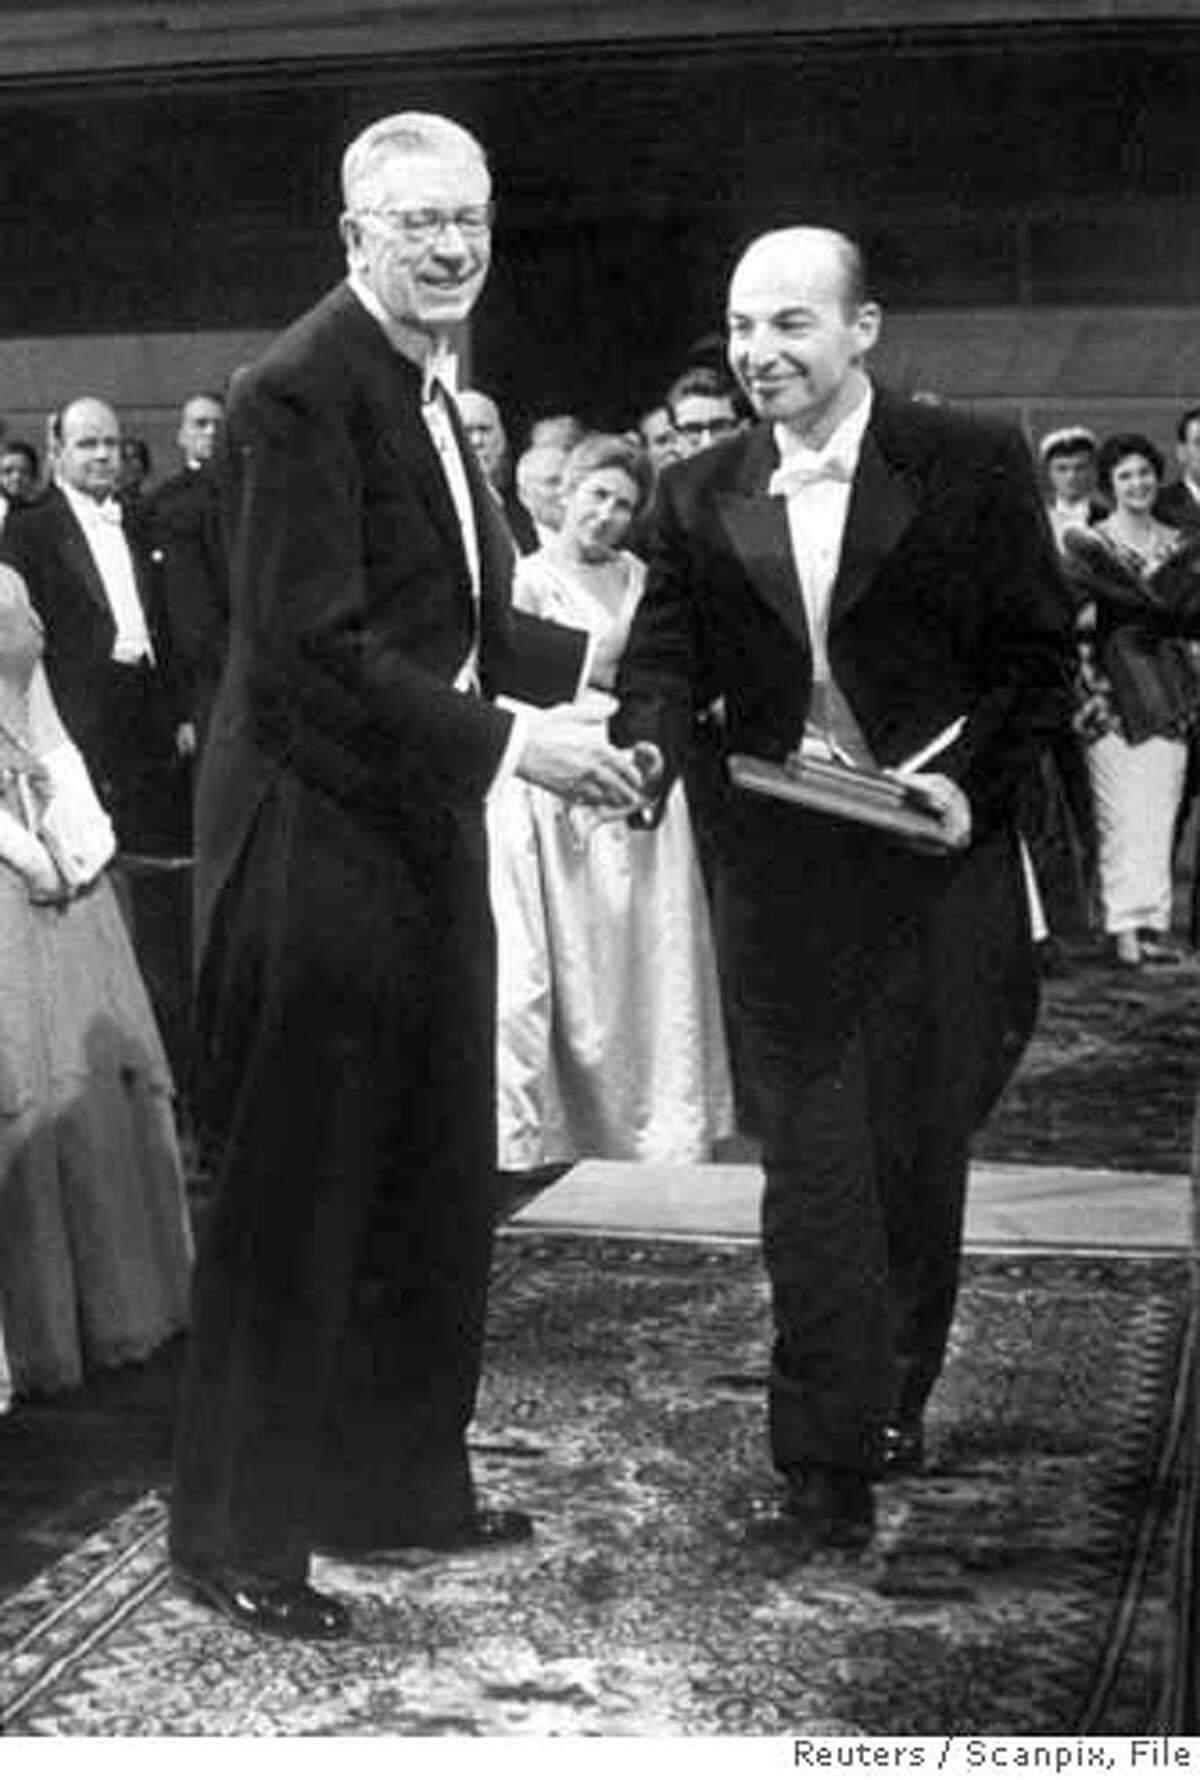 American Arthur Kornberg (R) is seen receiving the Nobel Prize in medicine from King Gustaf VI Adolf of Sweden in this December 10, 1959 file photo. Kornberg's son, Roger Kornberg, won the 2006 Nobel prize for chemistry on Wednesday for describing gene copying in cells, which can give insight into illnesses such as cancer and heart disease. DENMARK OUT NORWAY OUT SWEDEN OUT REUTERS/Scanpix/File (SWEDEN) ** SWEDEN OUT **